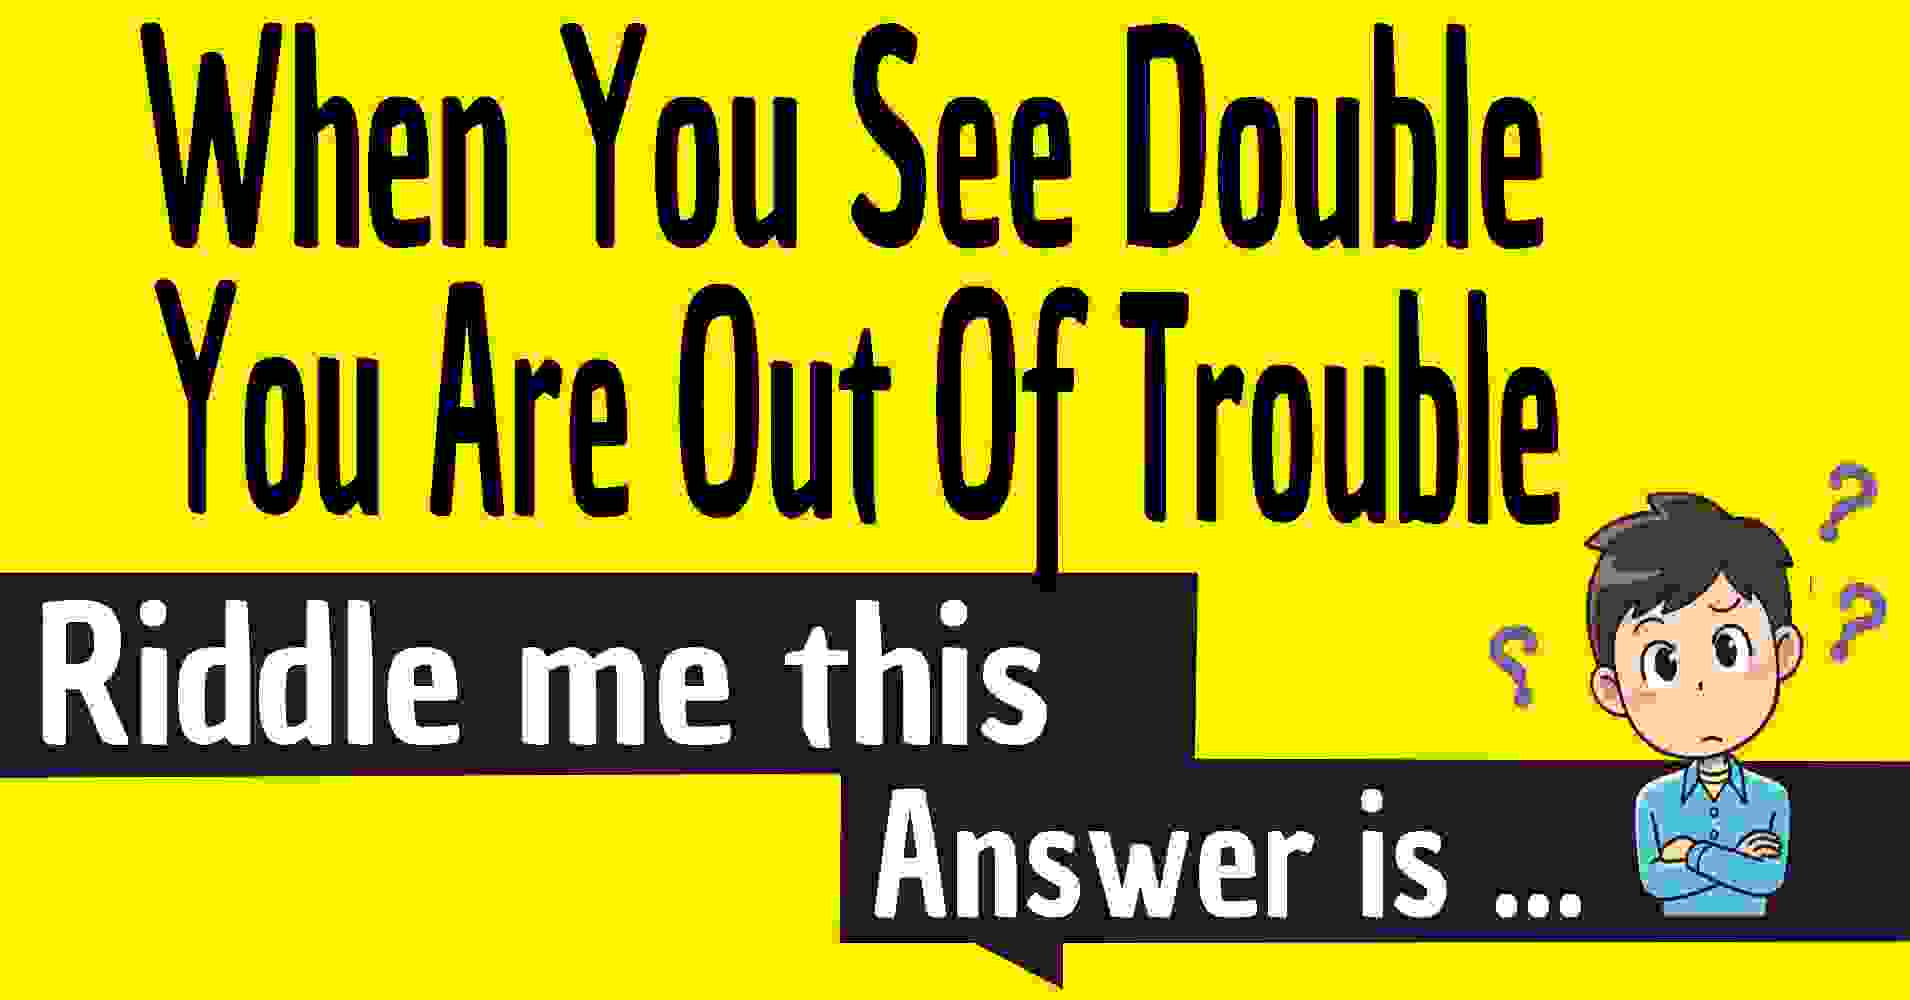 When You See Double You Are Out Of Trouble Riddle / Double Trouble: a riddle about two things